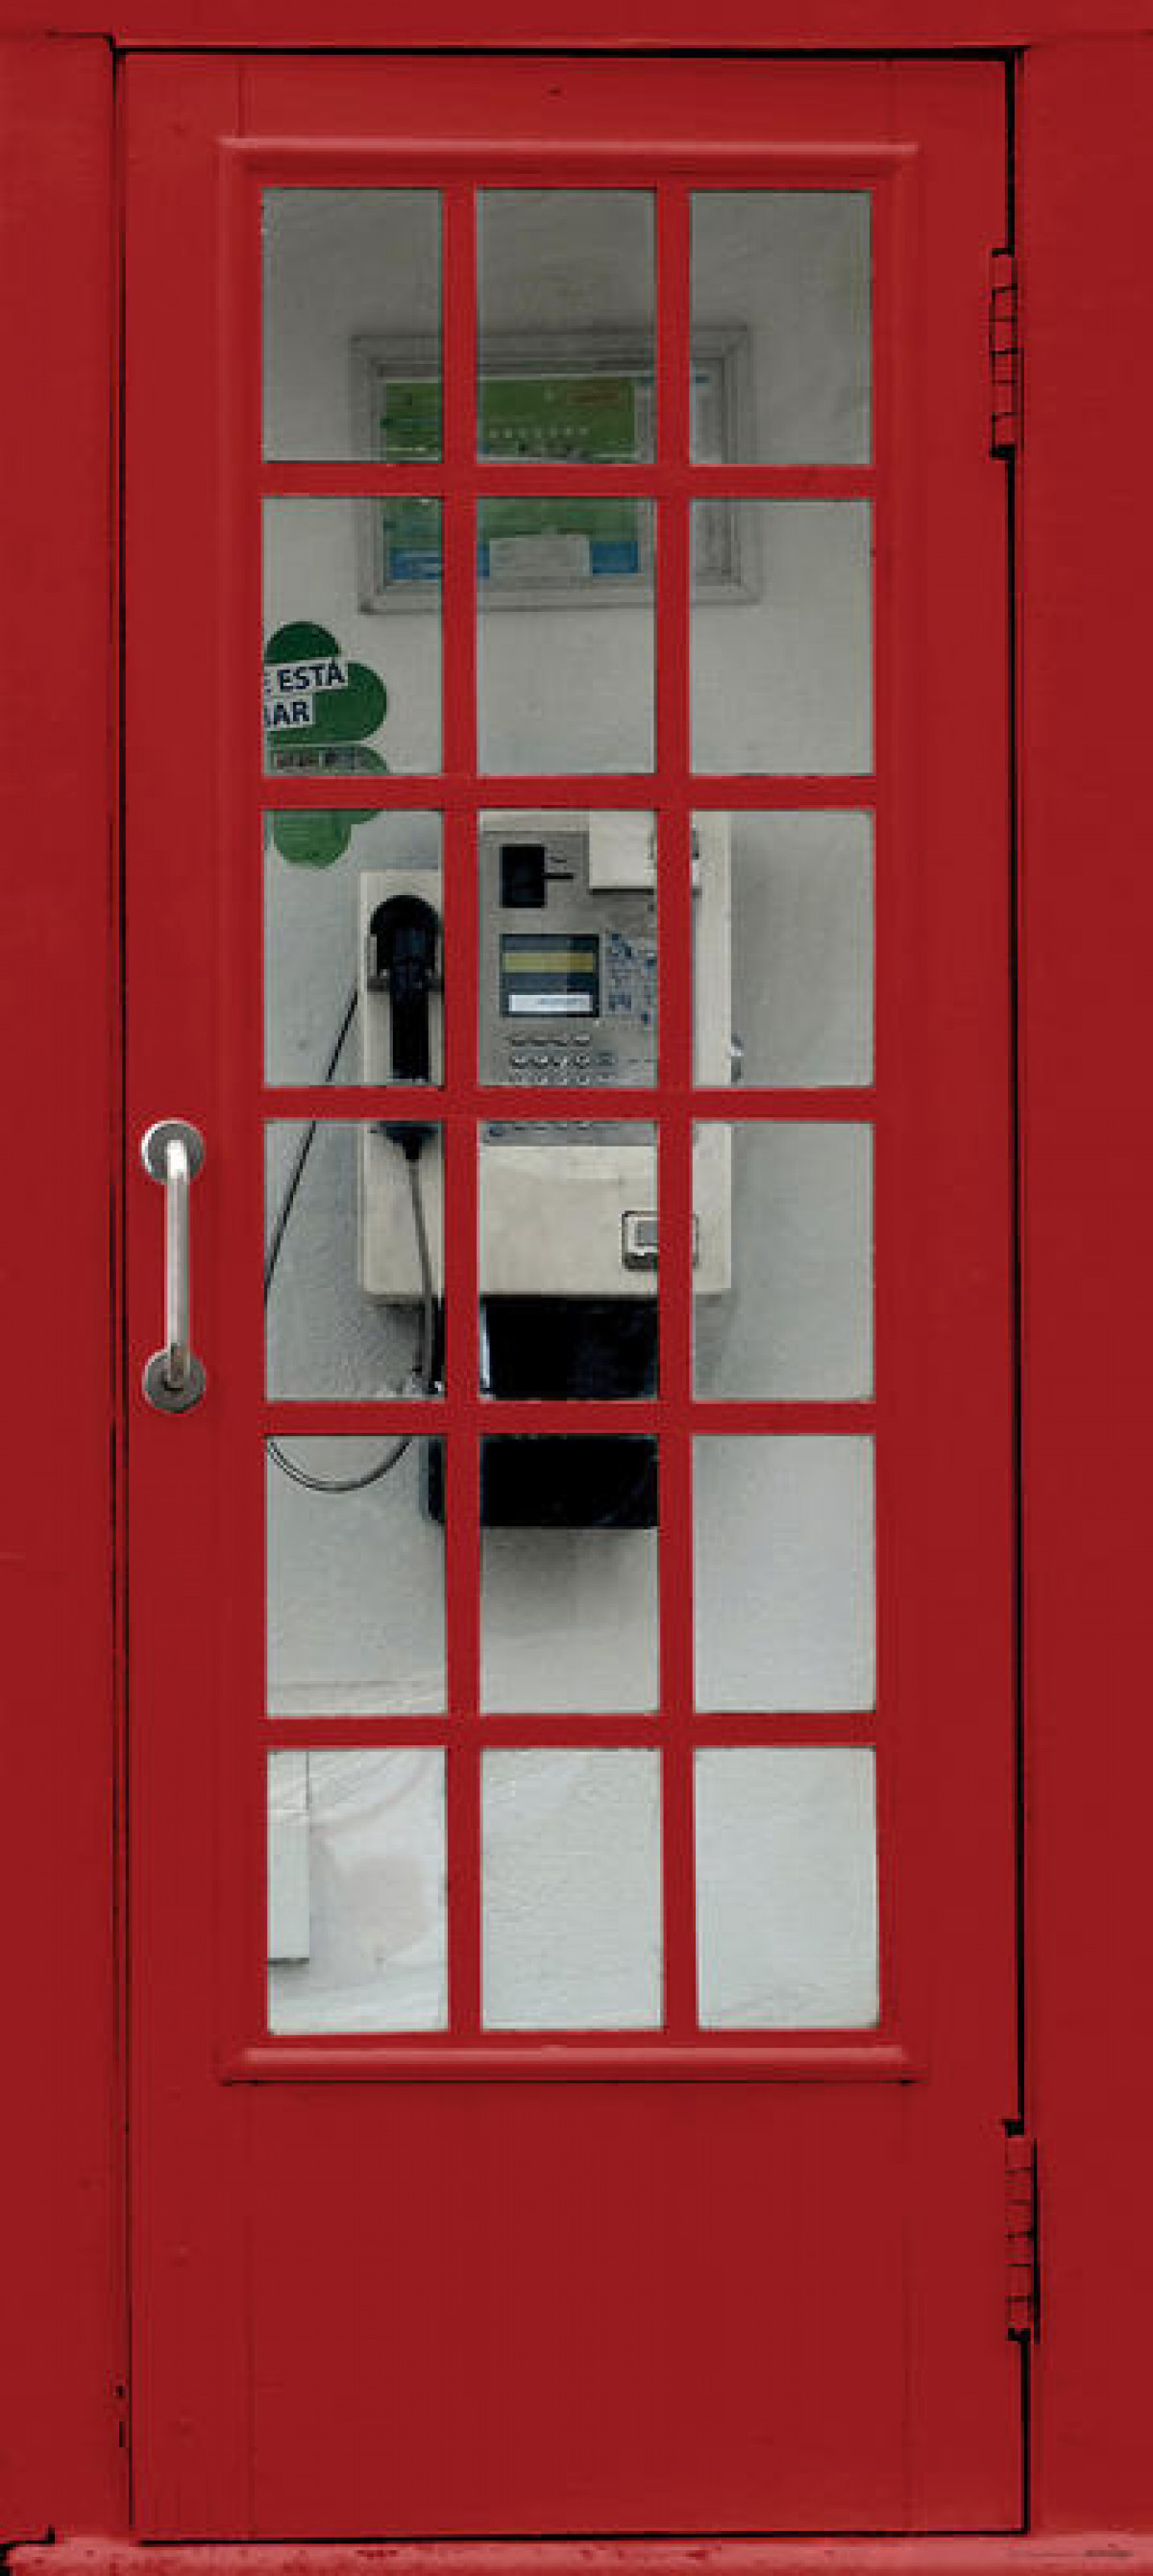 Phone booth, intissé photo mural, 90 x 202 cm, 1 part